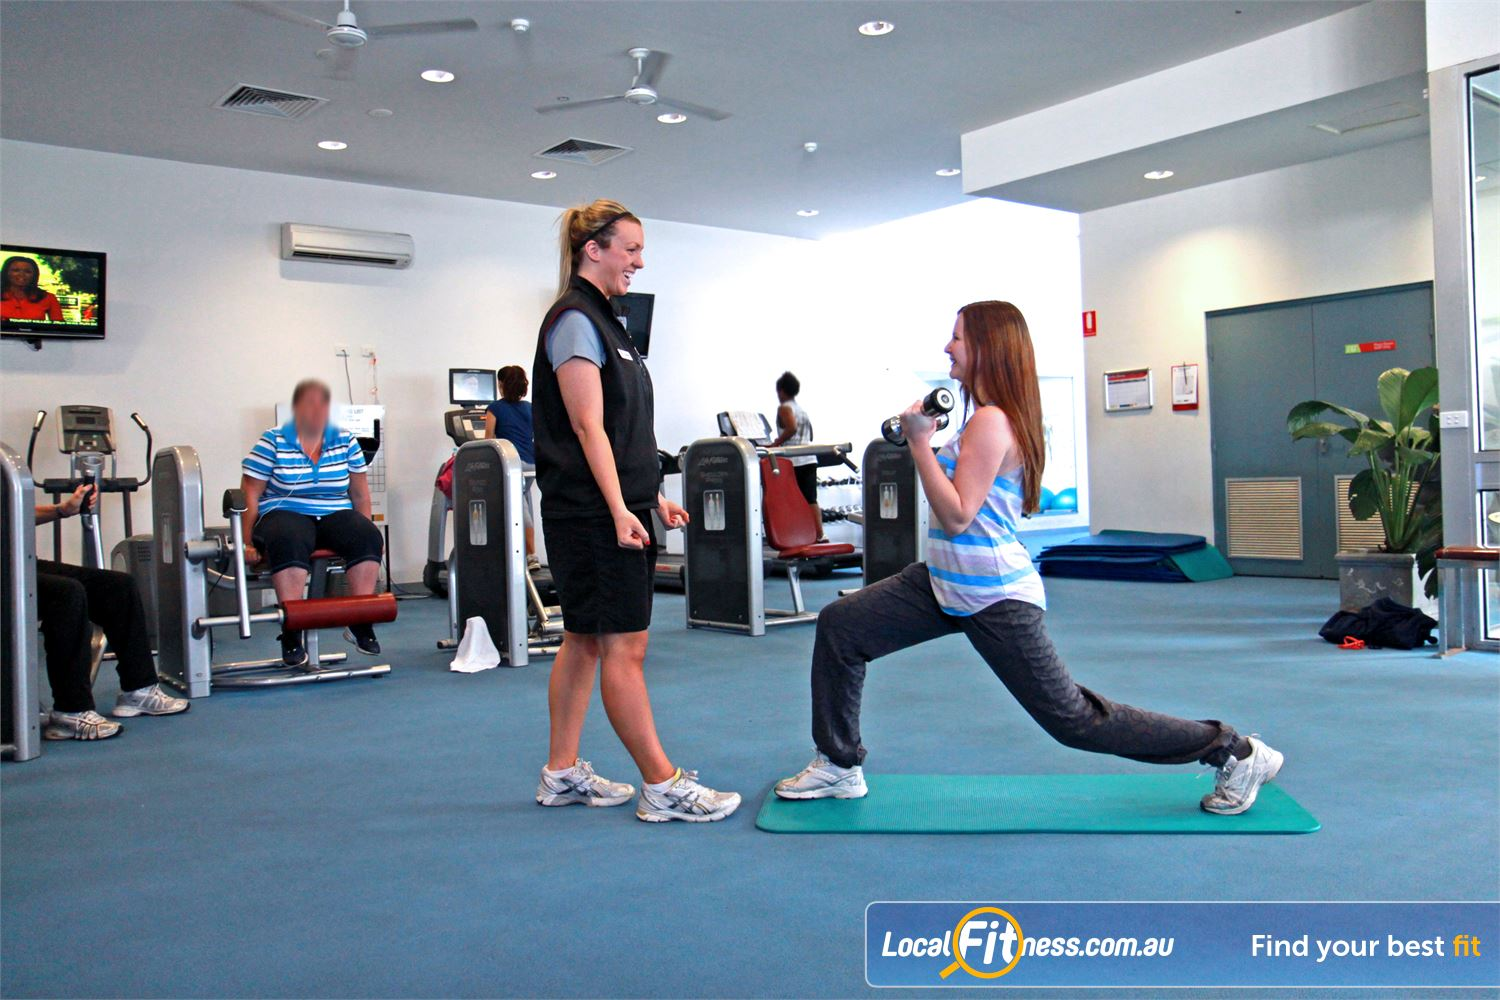 Ascot Vale Leisure Centre Near Moonee Ponds Join in on our popular Acot Vale circuit classes.